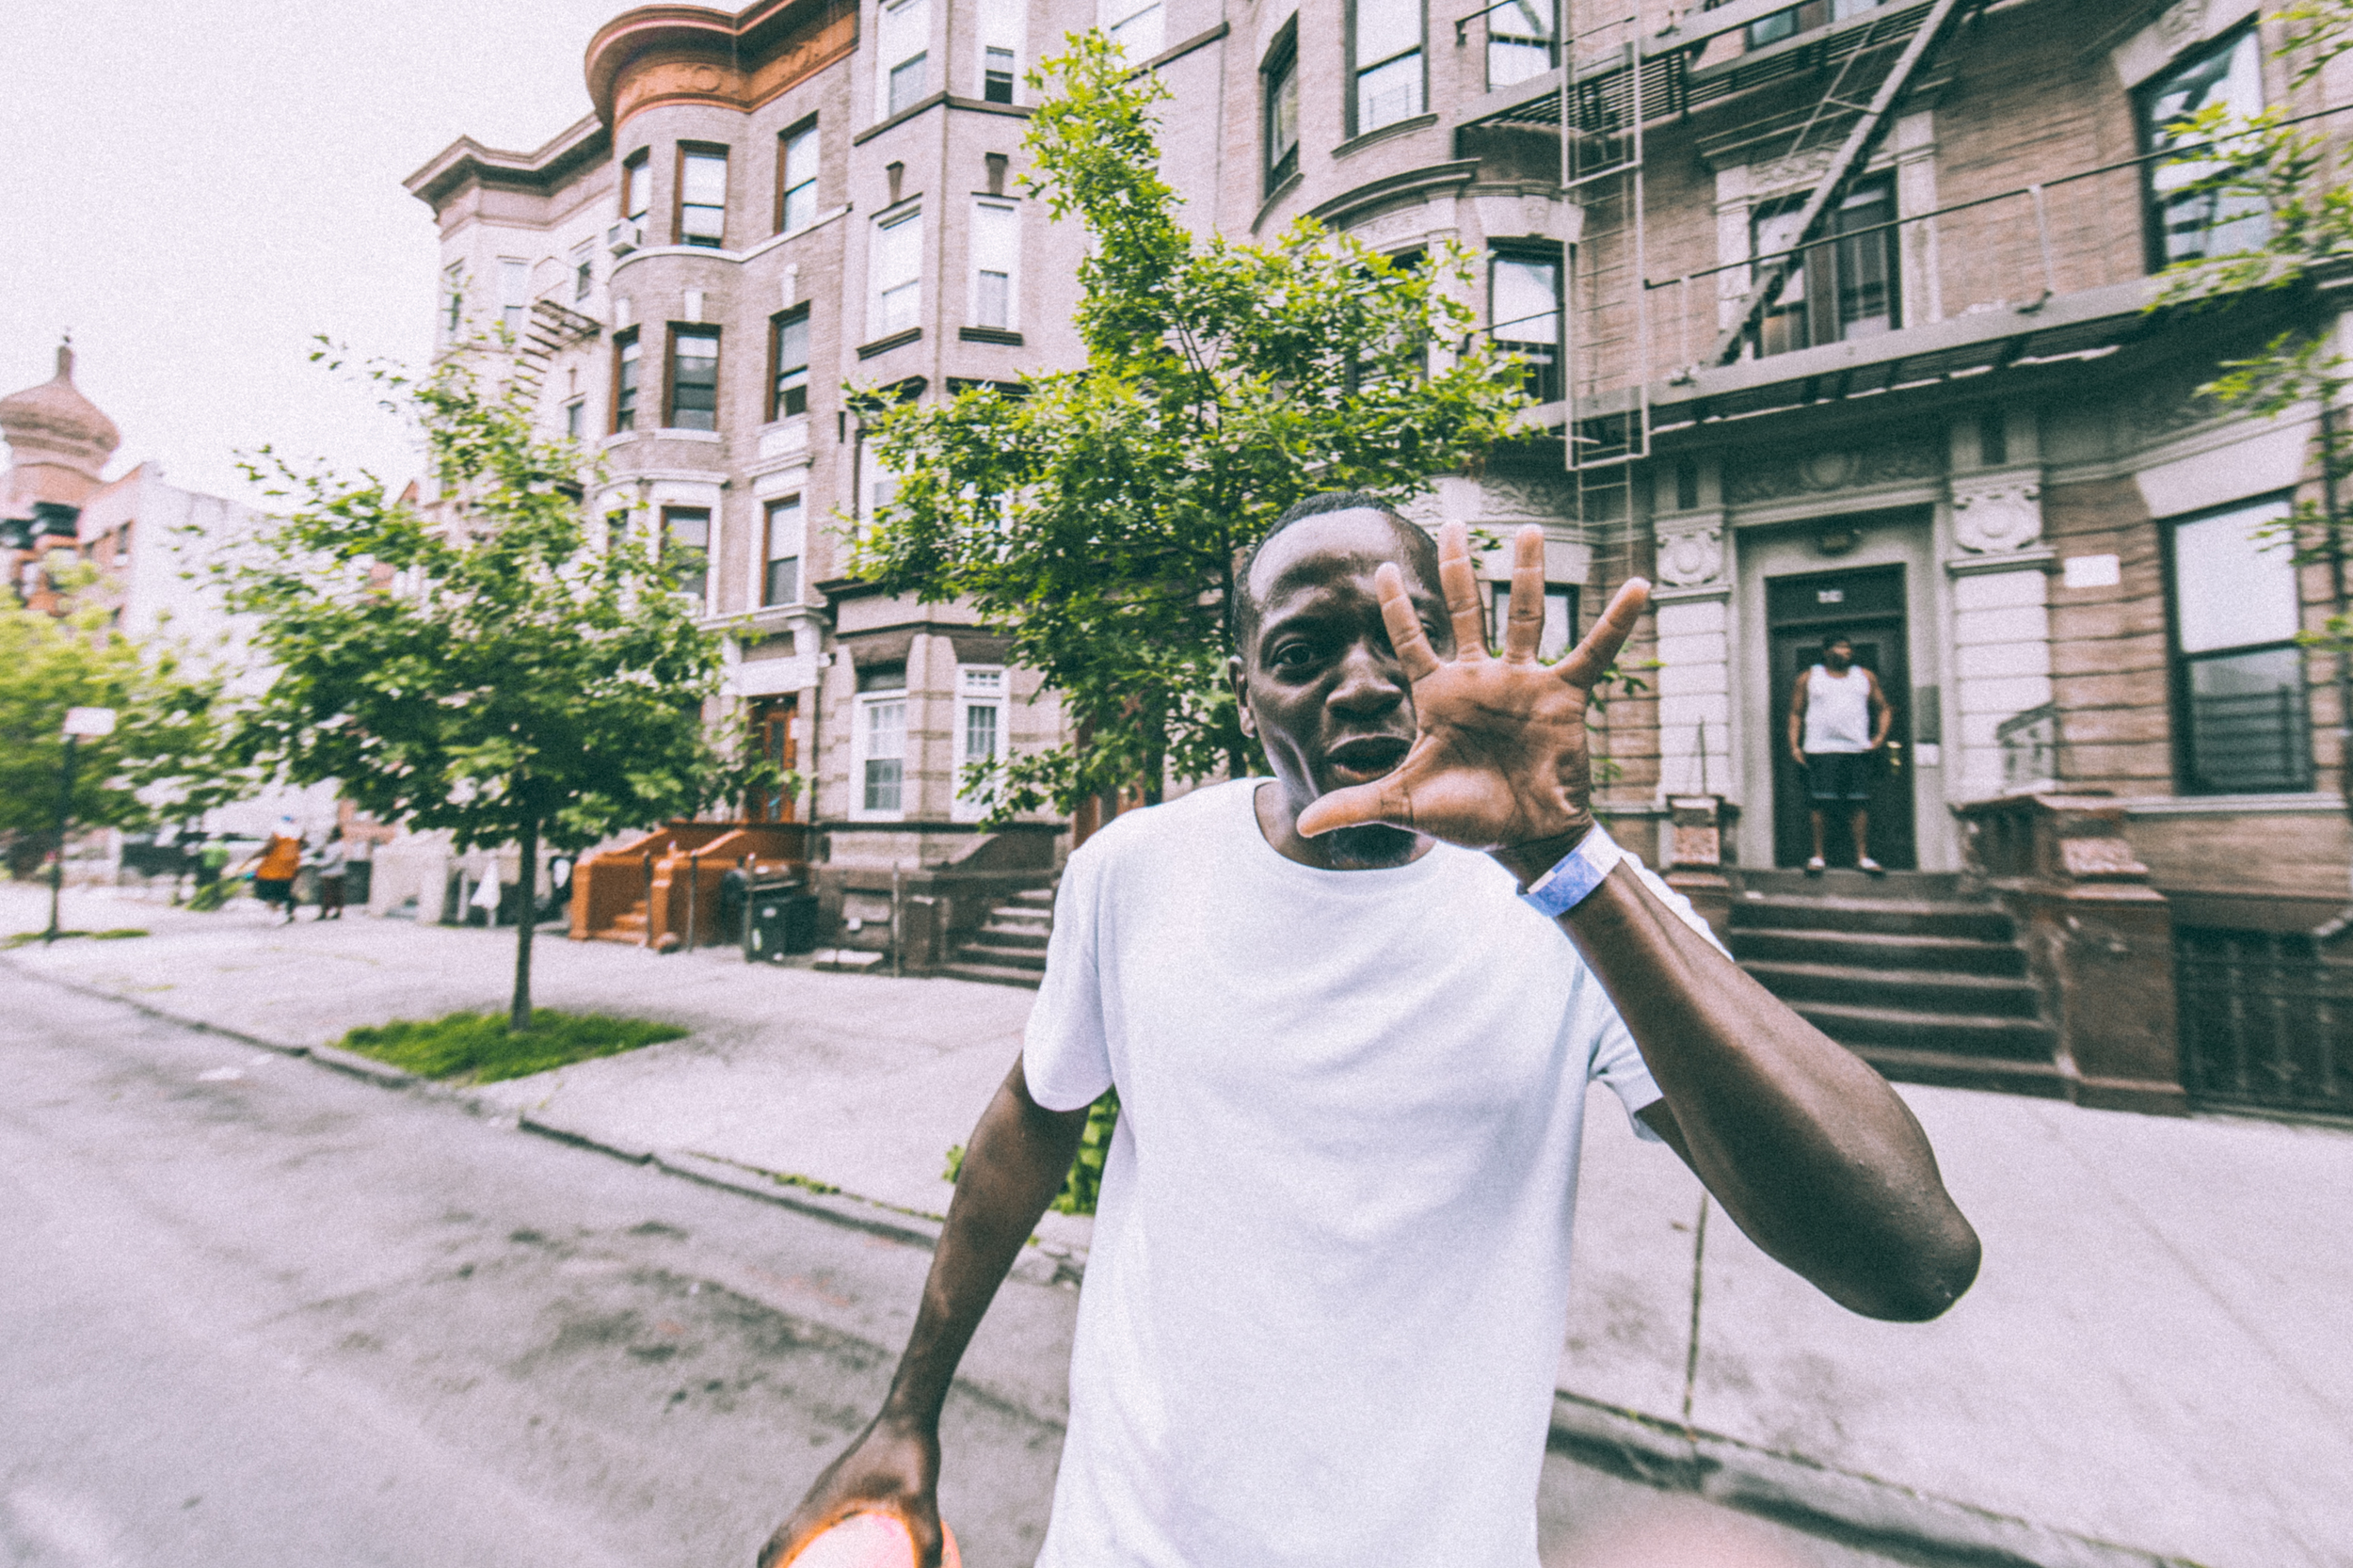 Herkimer Street Block Party Sunday, July 14th 12:oopm-6:oopm The Block   B/W Bedford & Nostrand   Brooklyn, NY 11216   Tickets